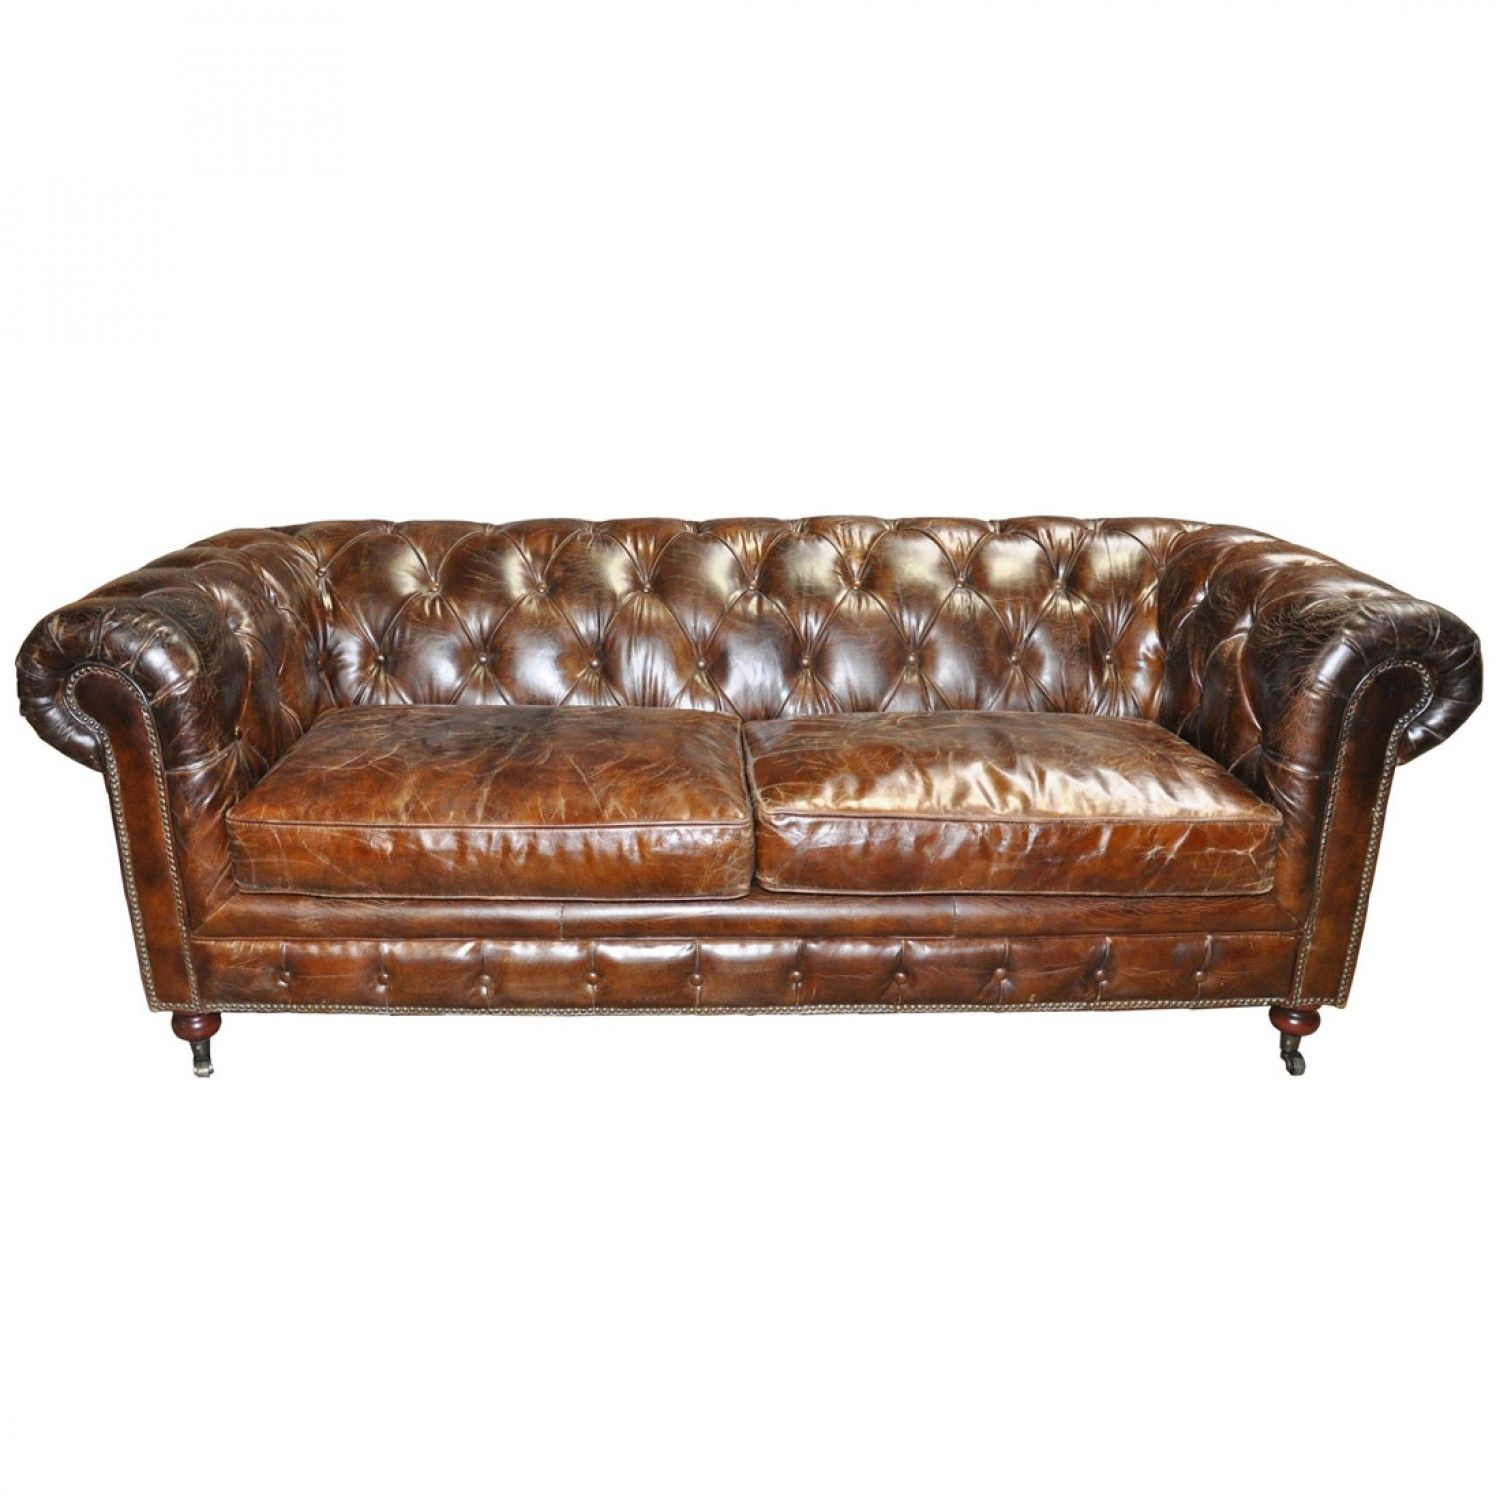 3 Seater Tufted Sofa In Brown Vintage Leather 4 752 00  # Timothy Hutton Muebles